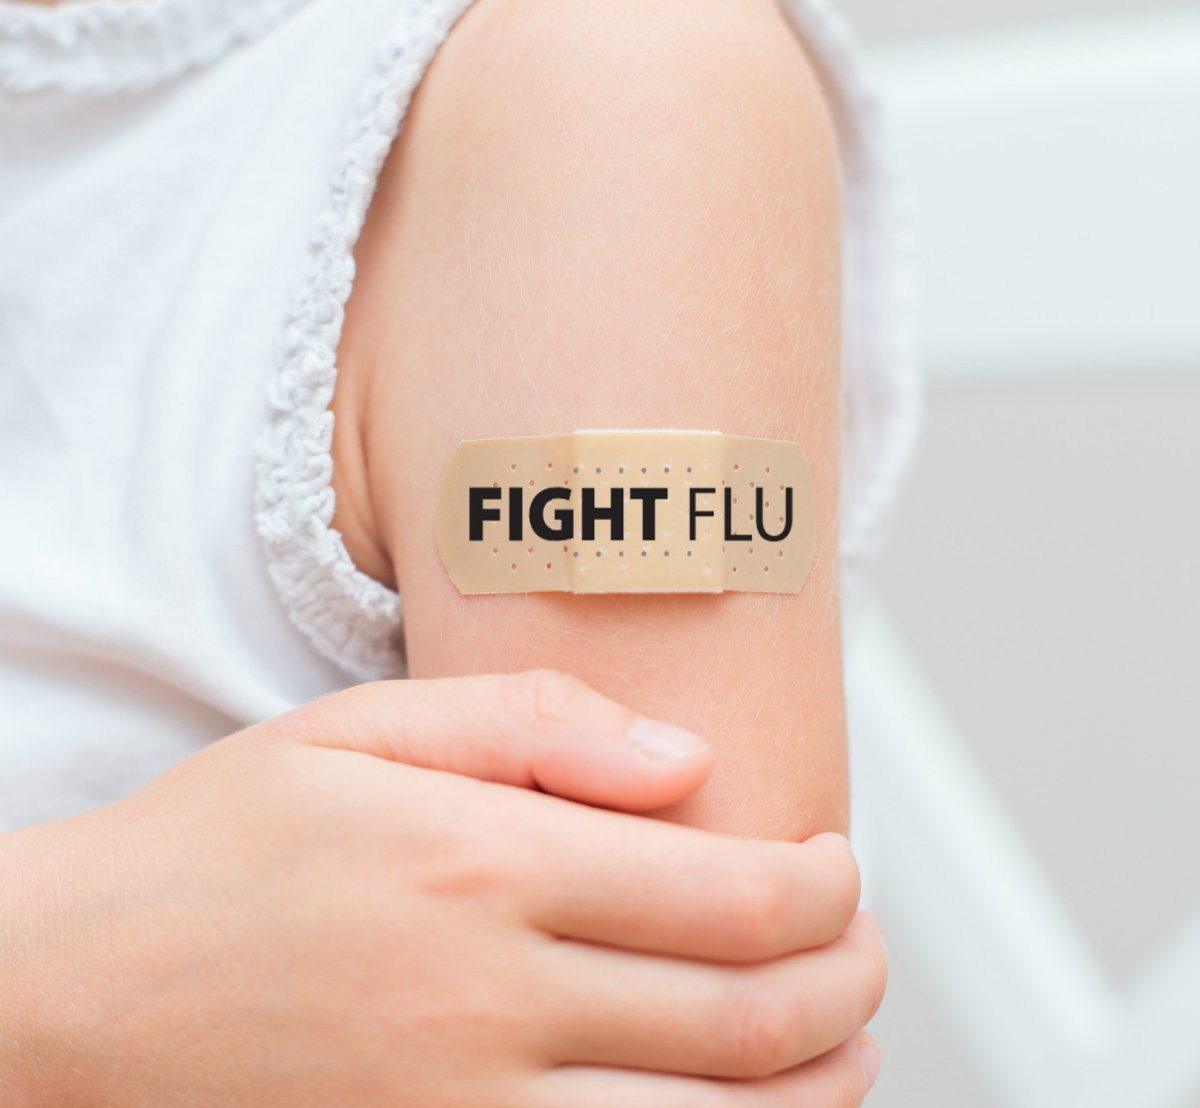 Read more on weekly flu report centers for disease control and - Flu Vaccine Recommendations For 2017 2018 The Cdc